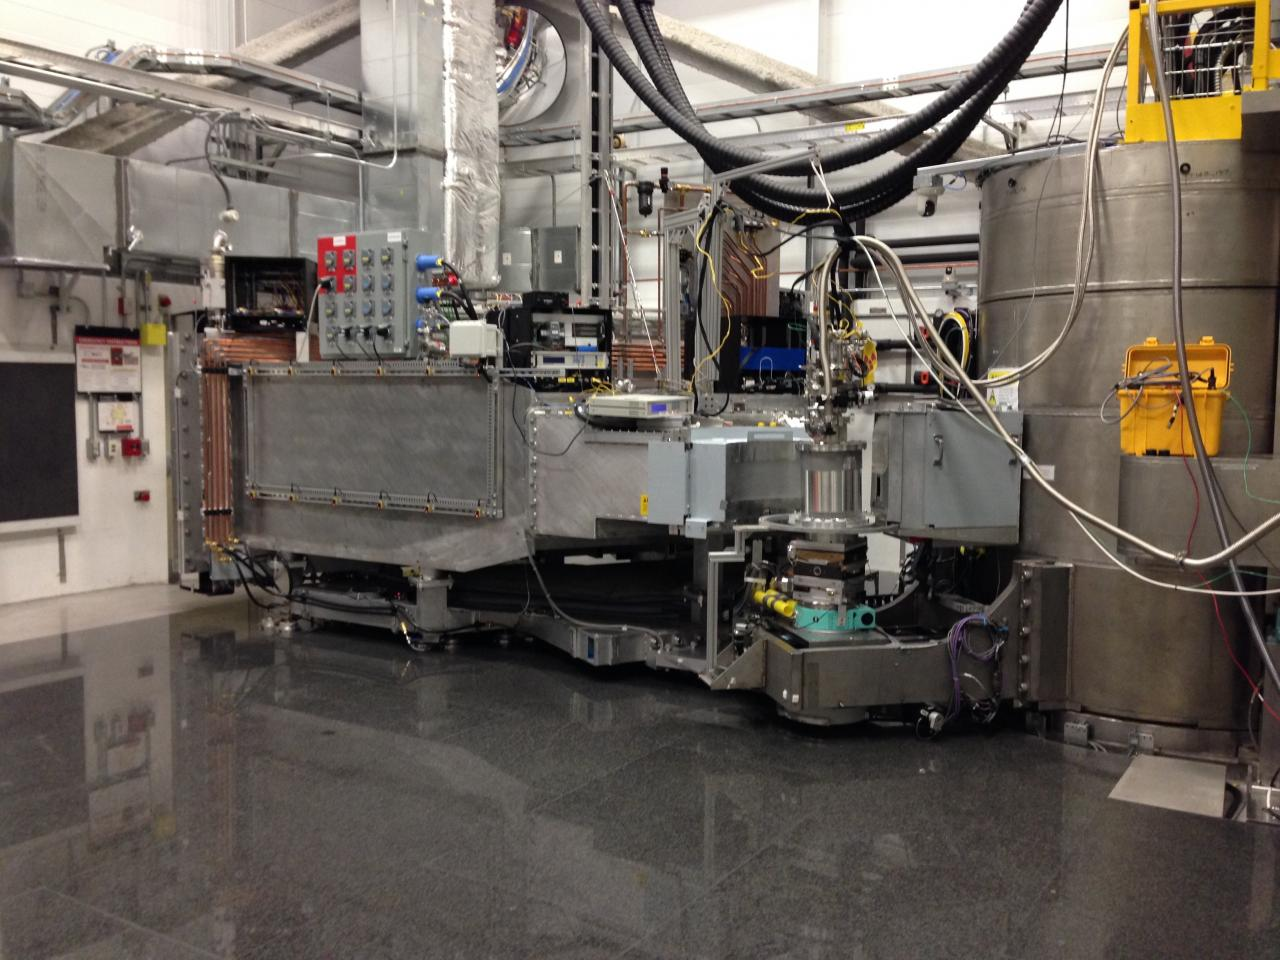 Delaire group neutron scattering with HYSPEC at SNS